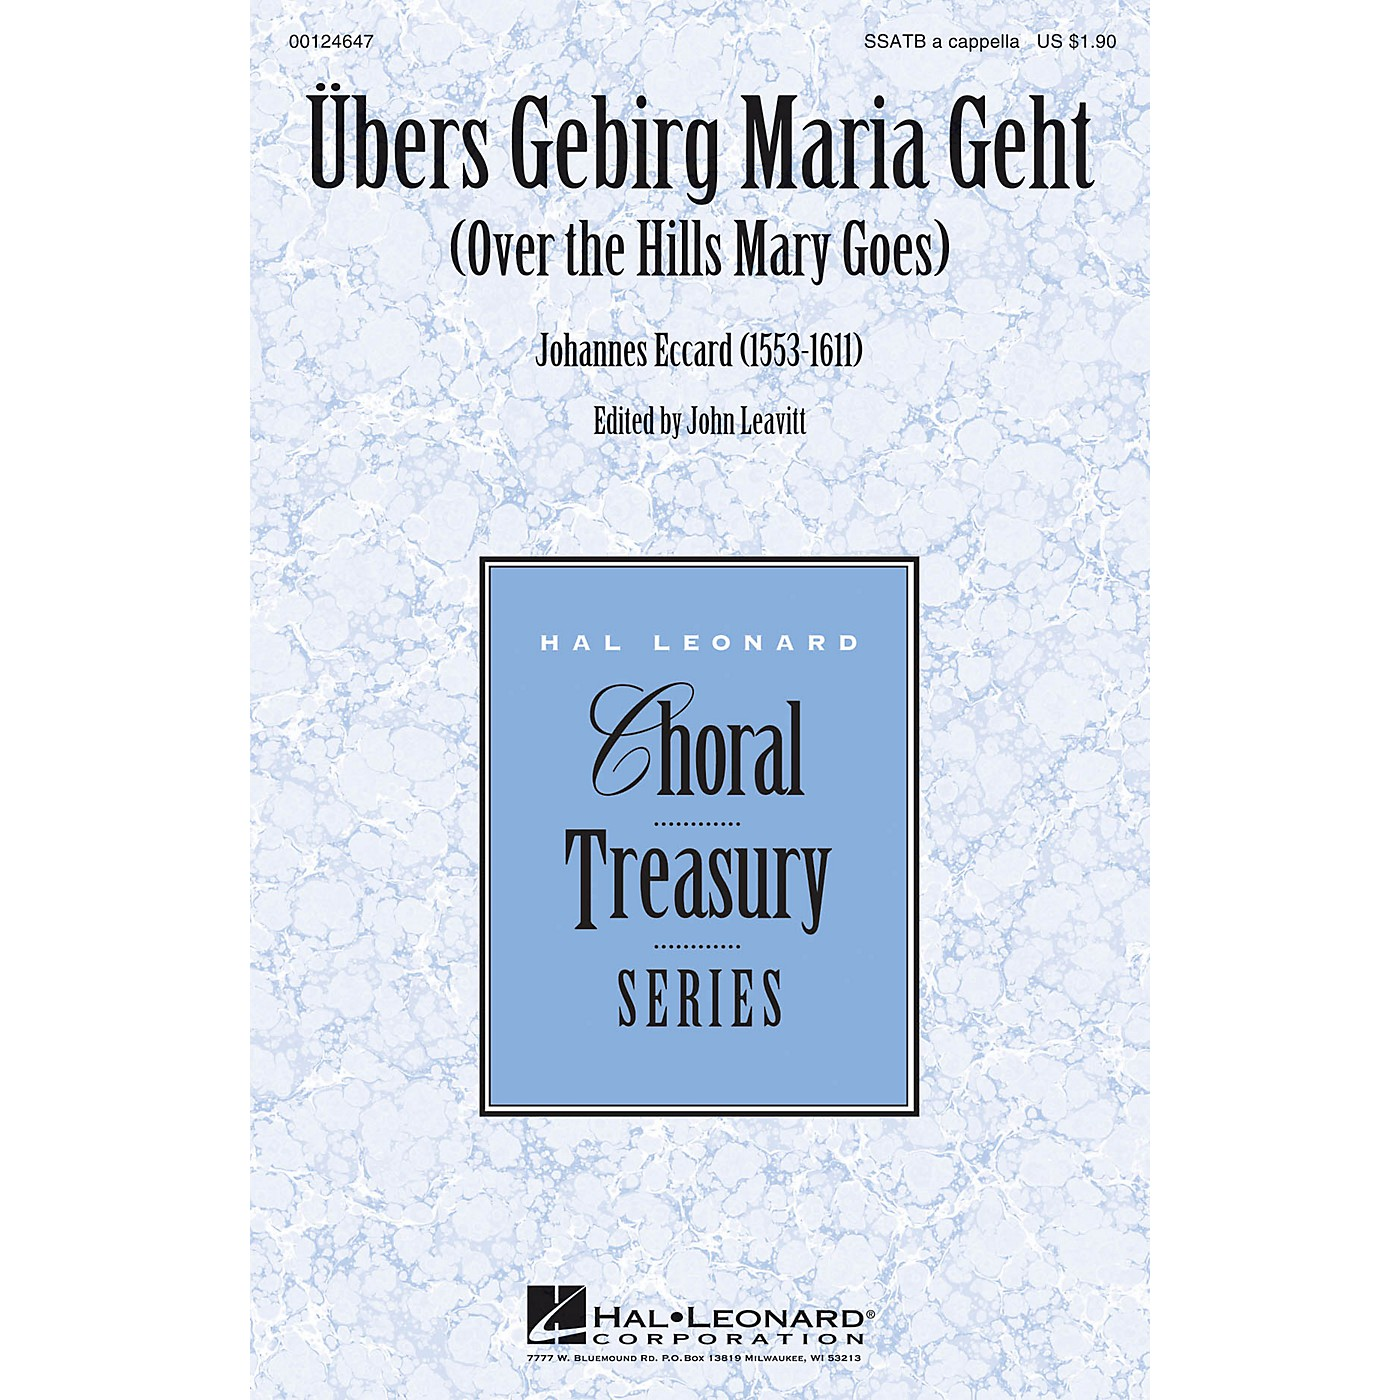 Hal Leonard Übers Gebirg Maria Geht (Over the Hills Mary Goes) SSATB A Cappella composed by Johannes Eccard thumbnail